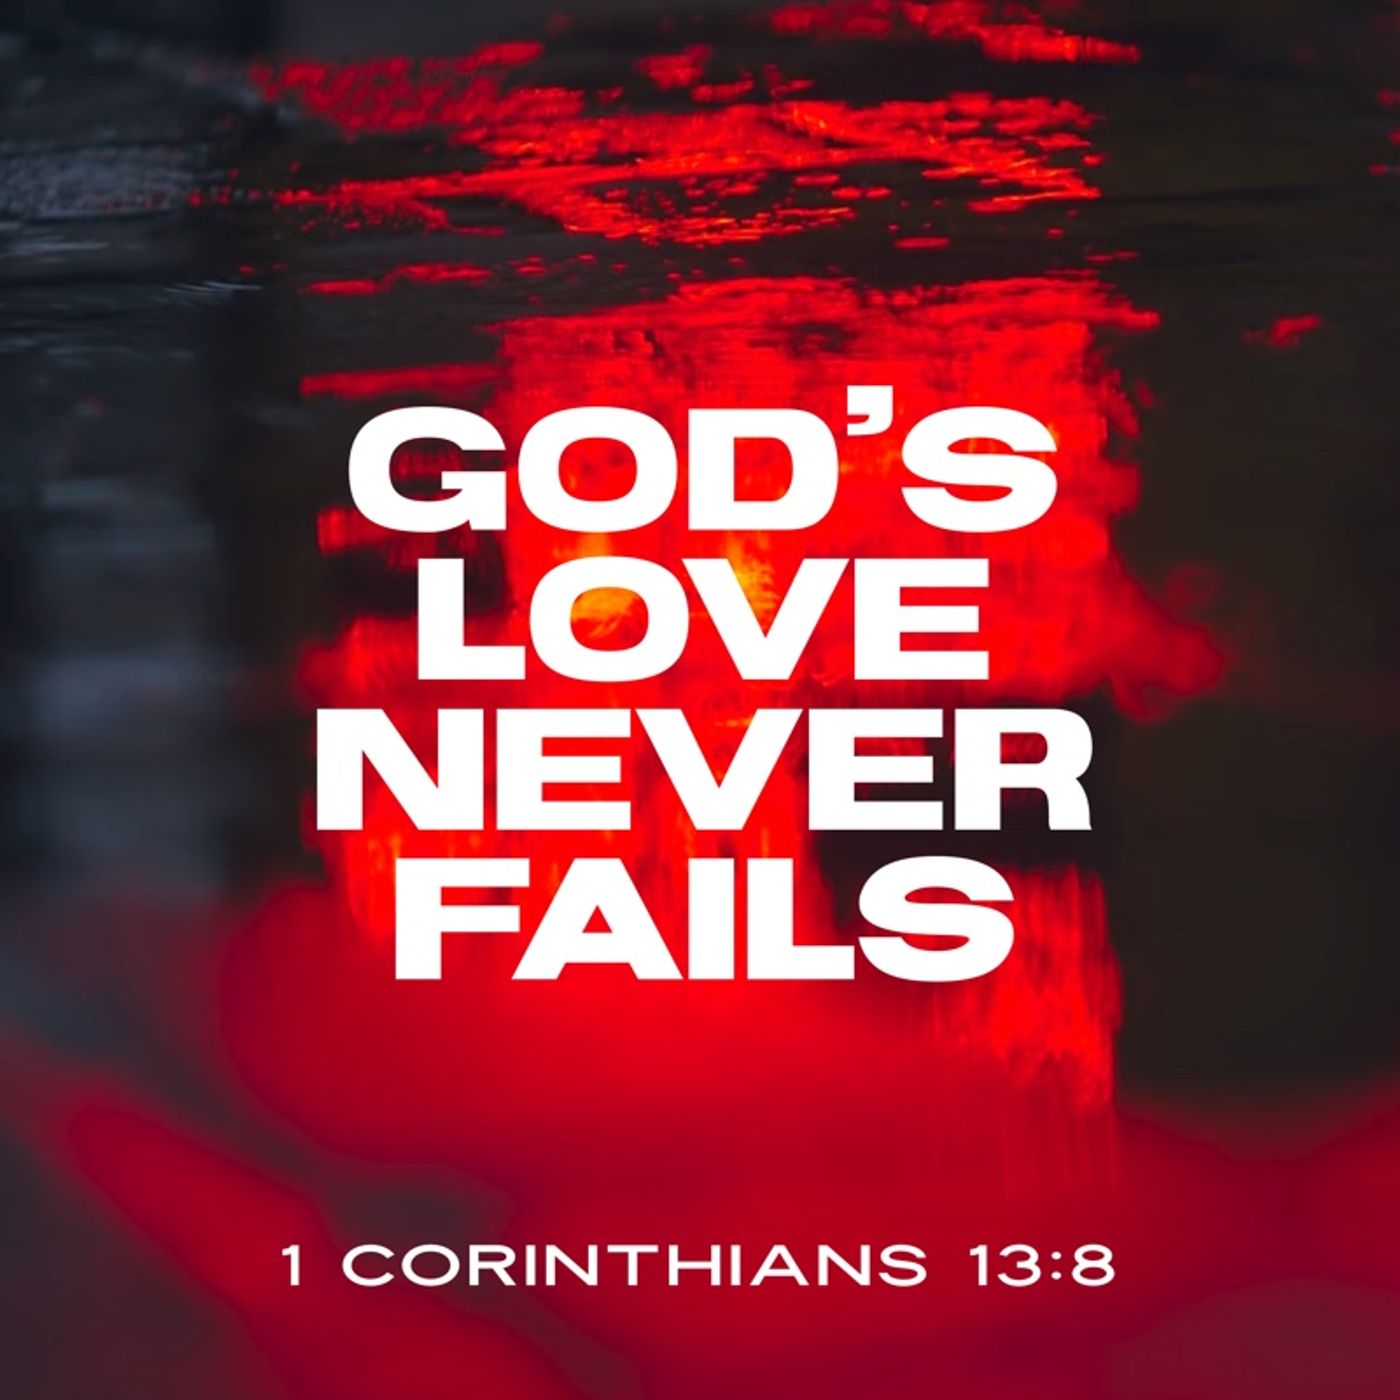 God's Passionate Love Makes You Completely Whole and Heals Your Hurting Heart